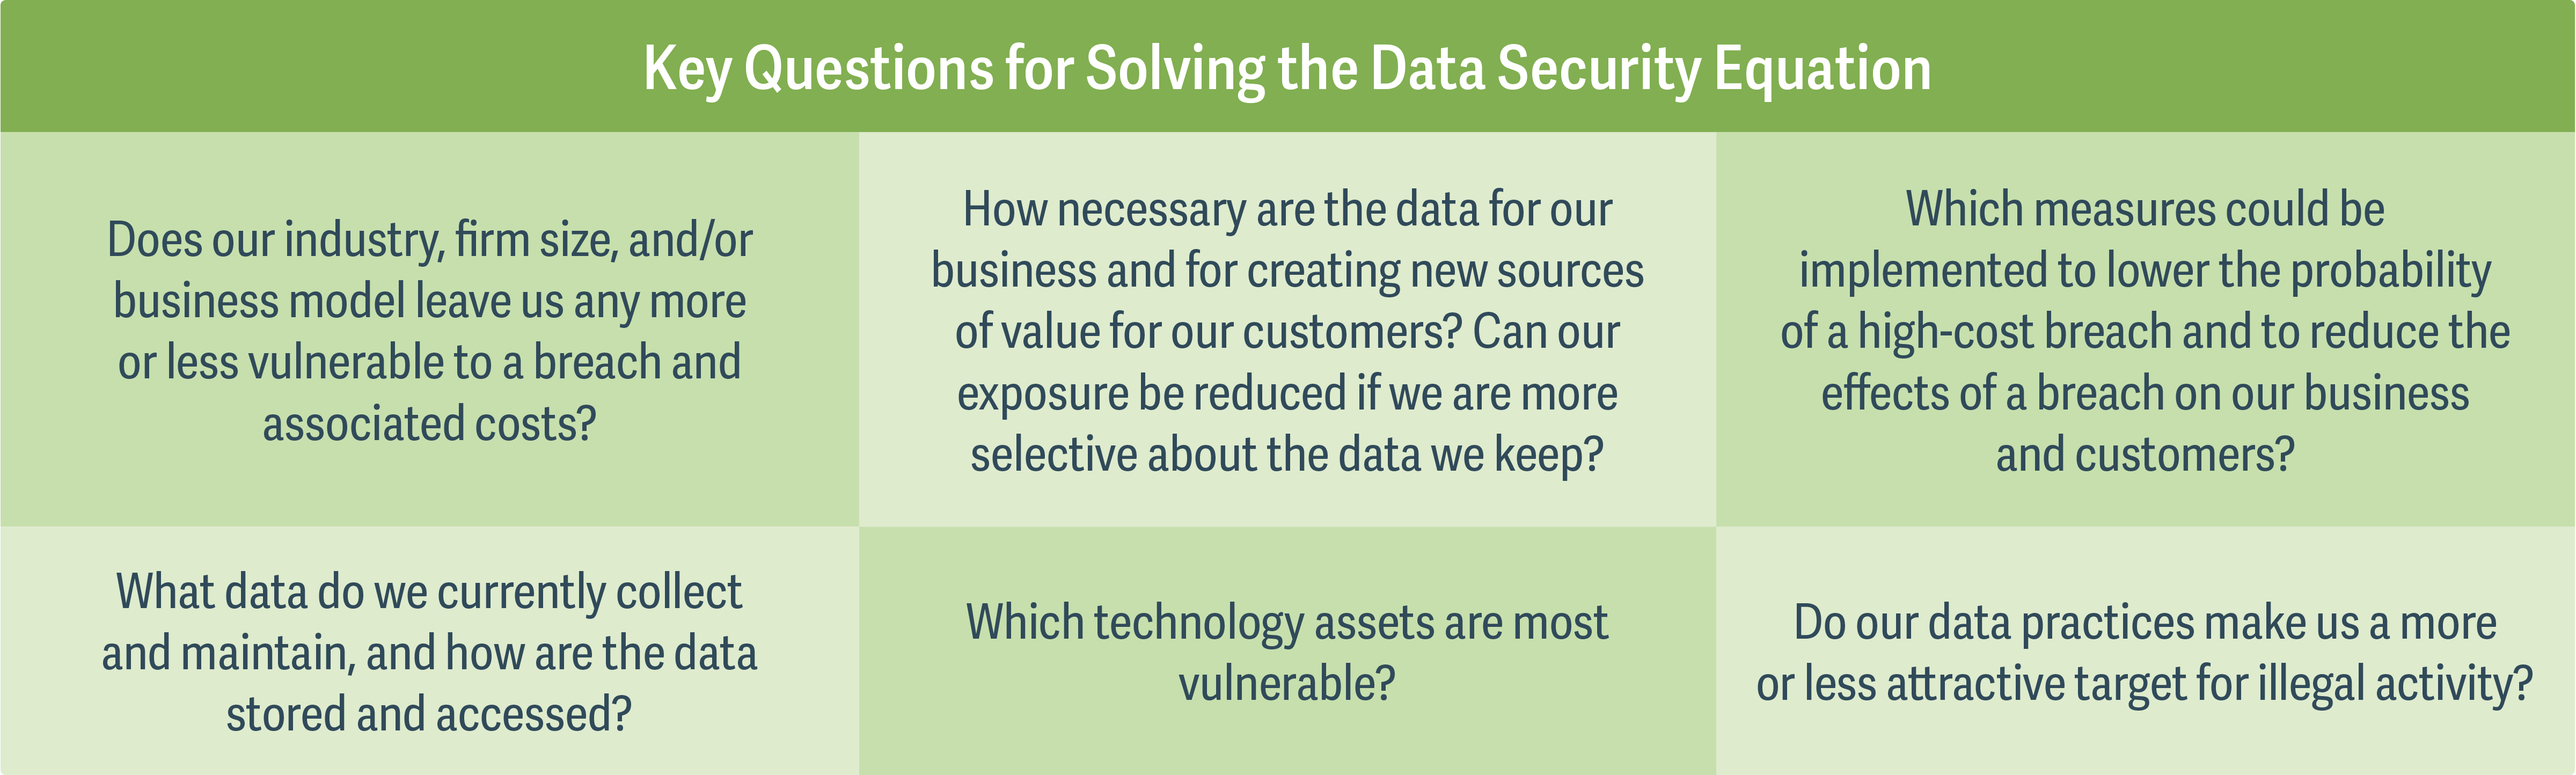 "How Much Is Enough? Applying the ""Rule of Reason"" to Data Security- Figure 1"